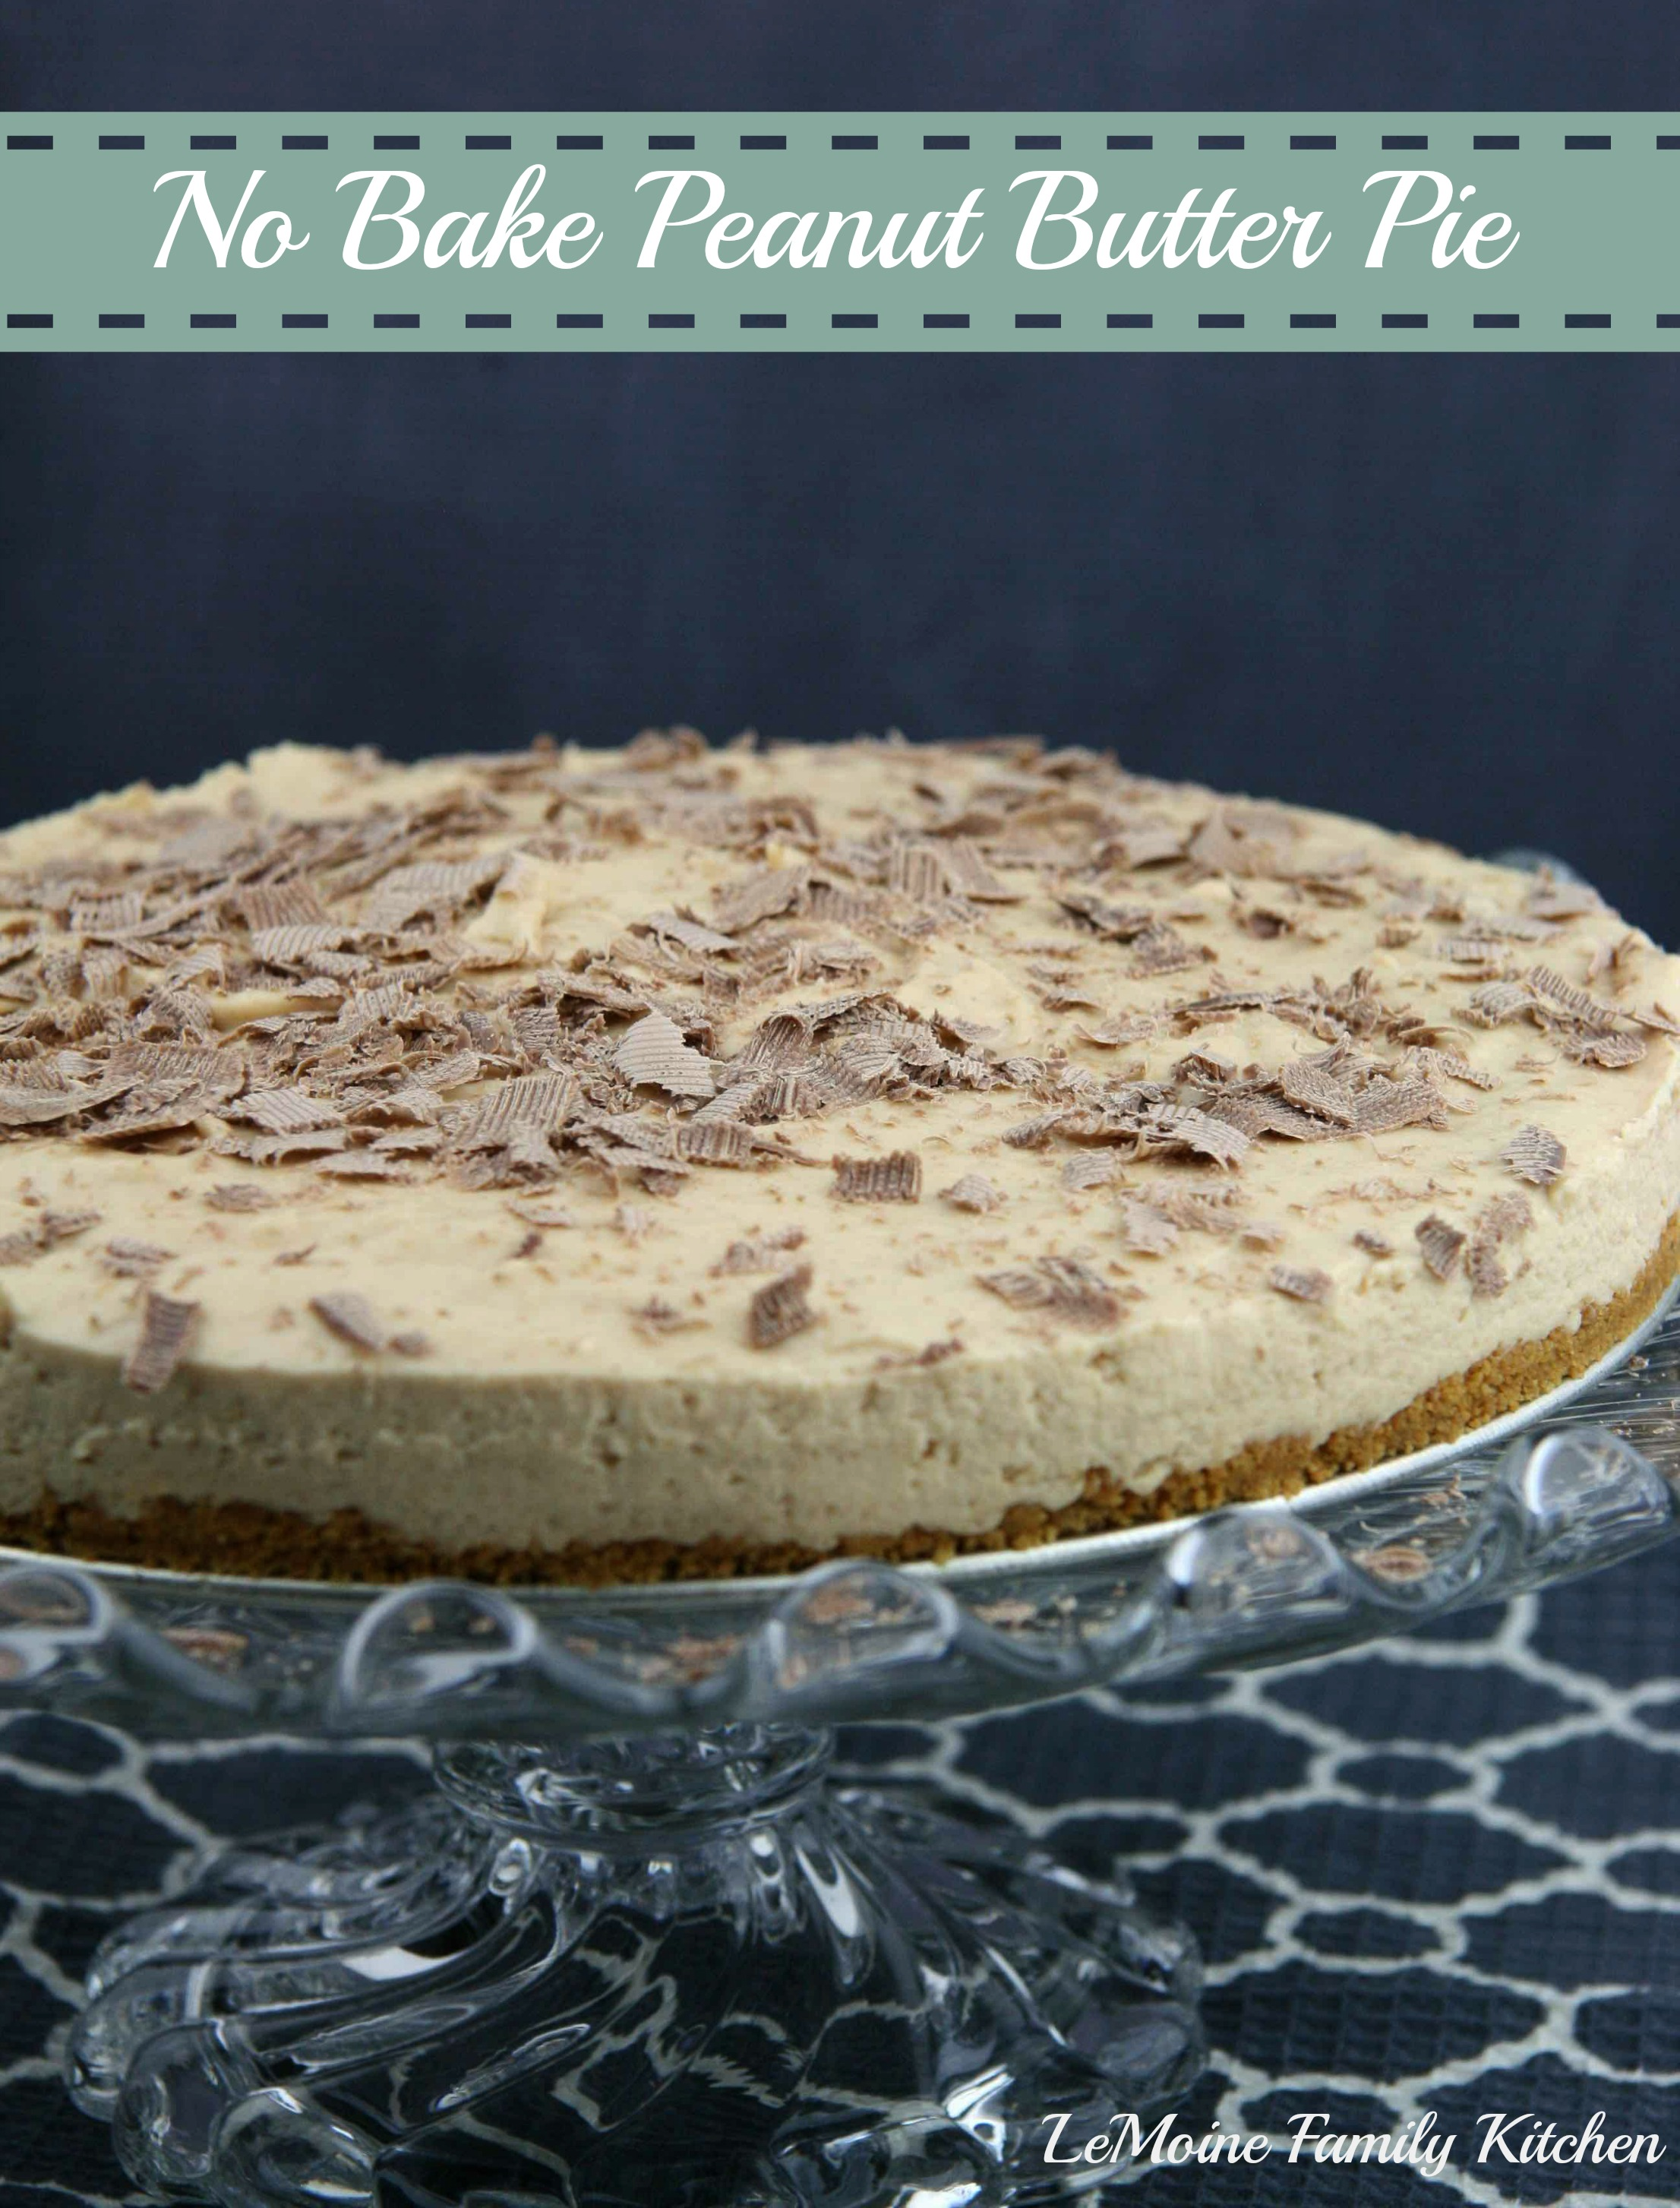 No Bake Peanut Butter Pie